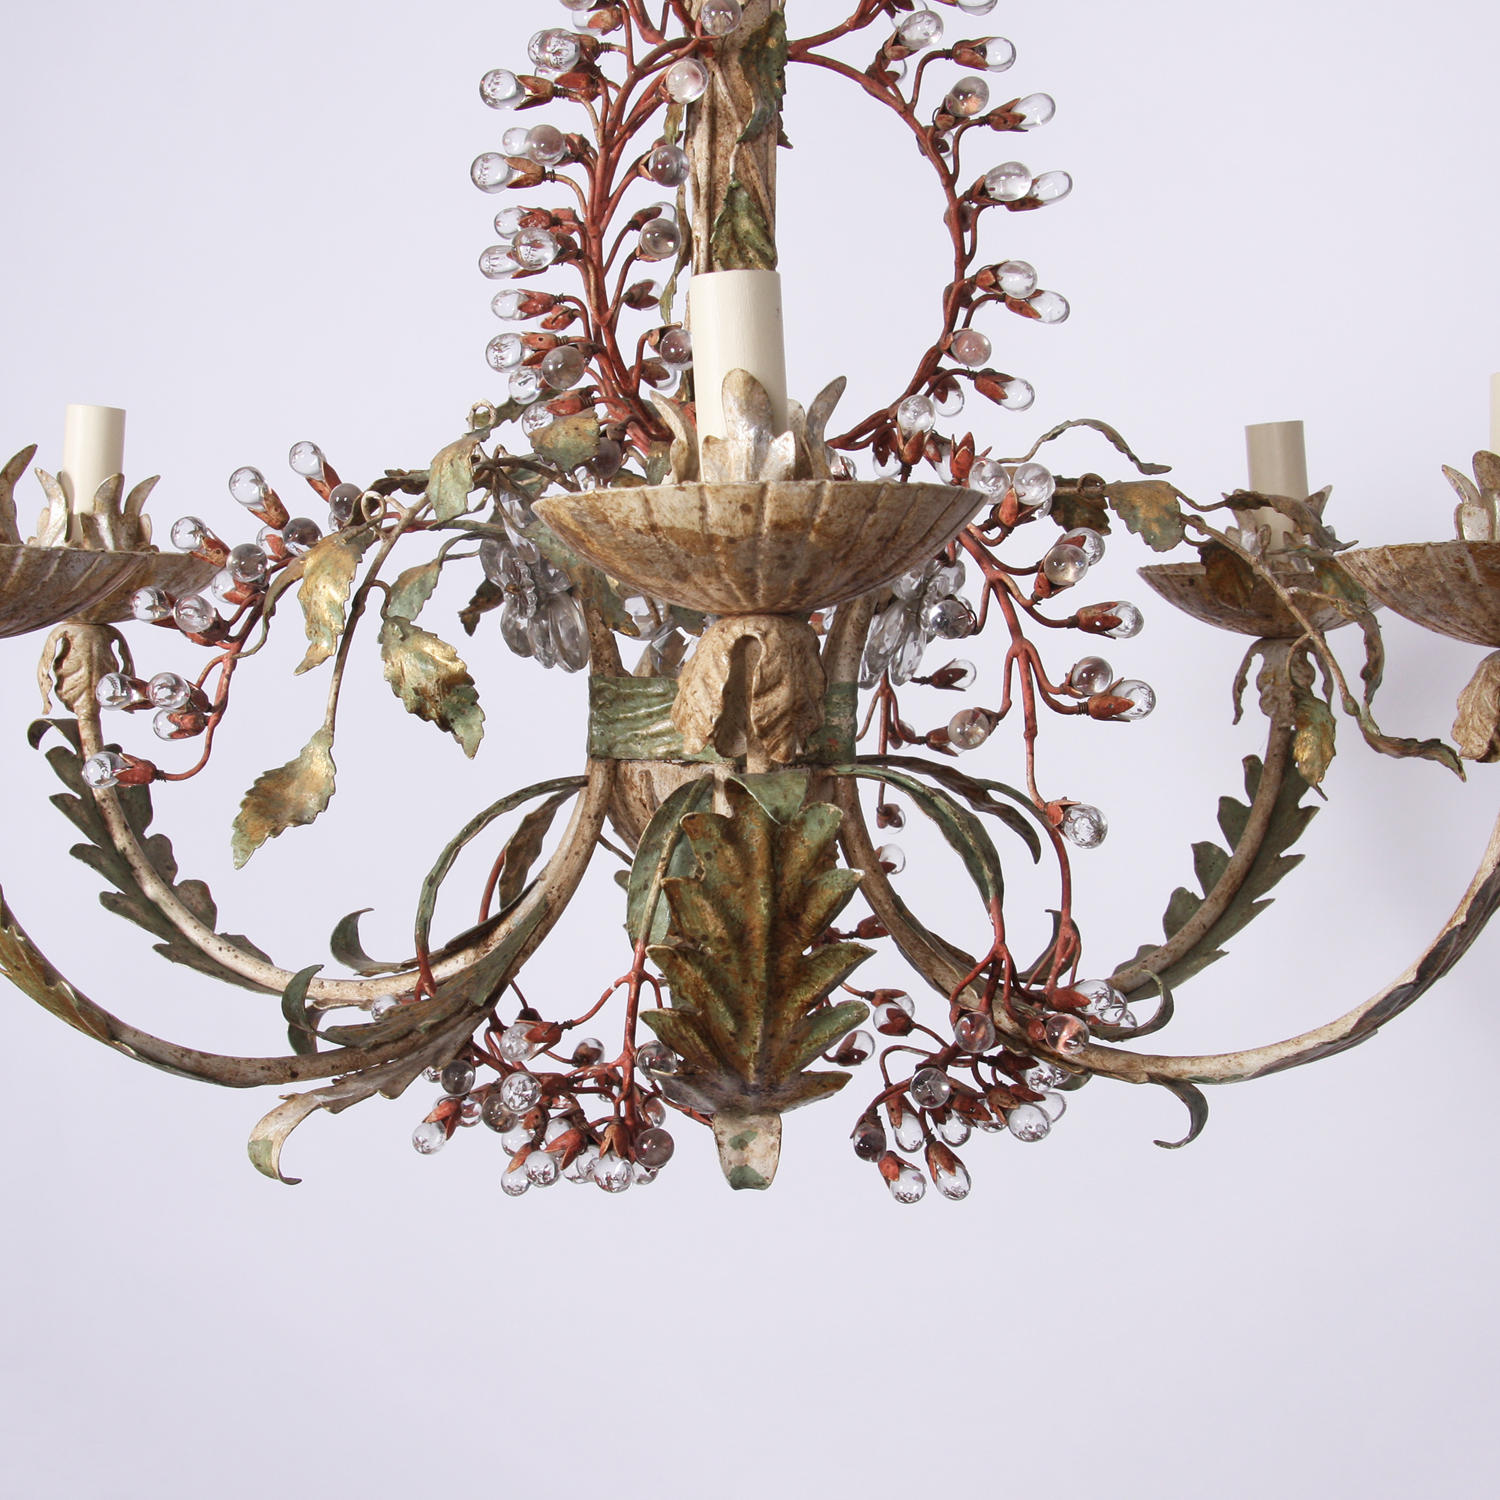 Tole chandelier in chandeliers tole chandelier picture 2 mozeypictures Image collections